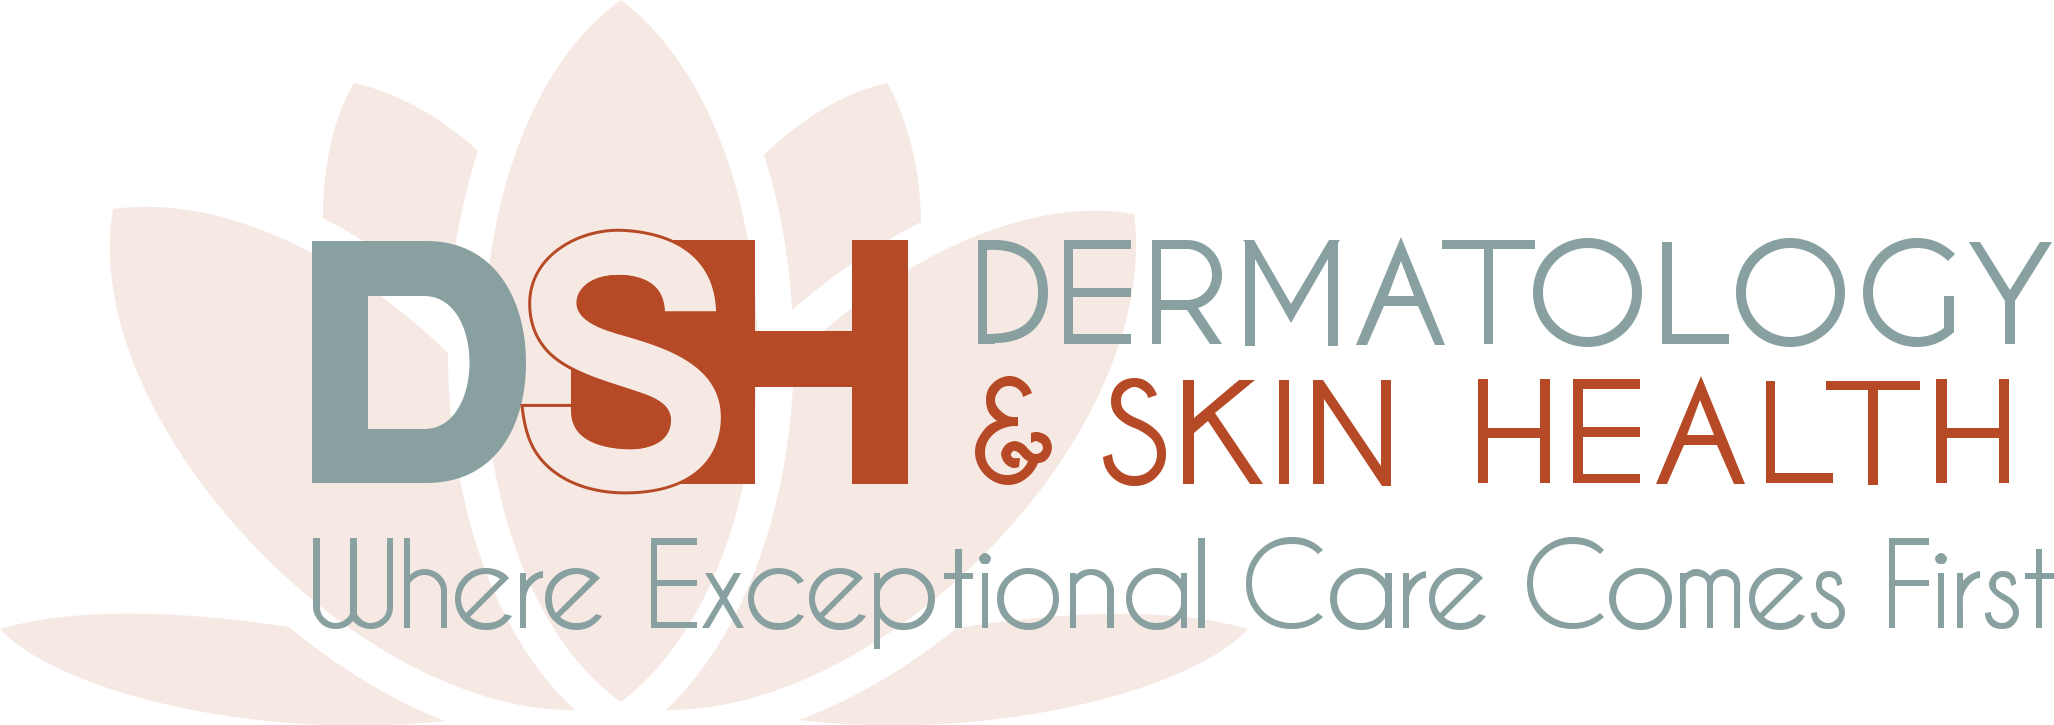 Dermatology and Skin Health